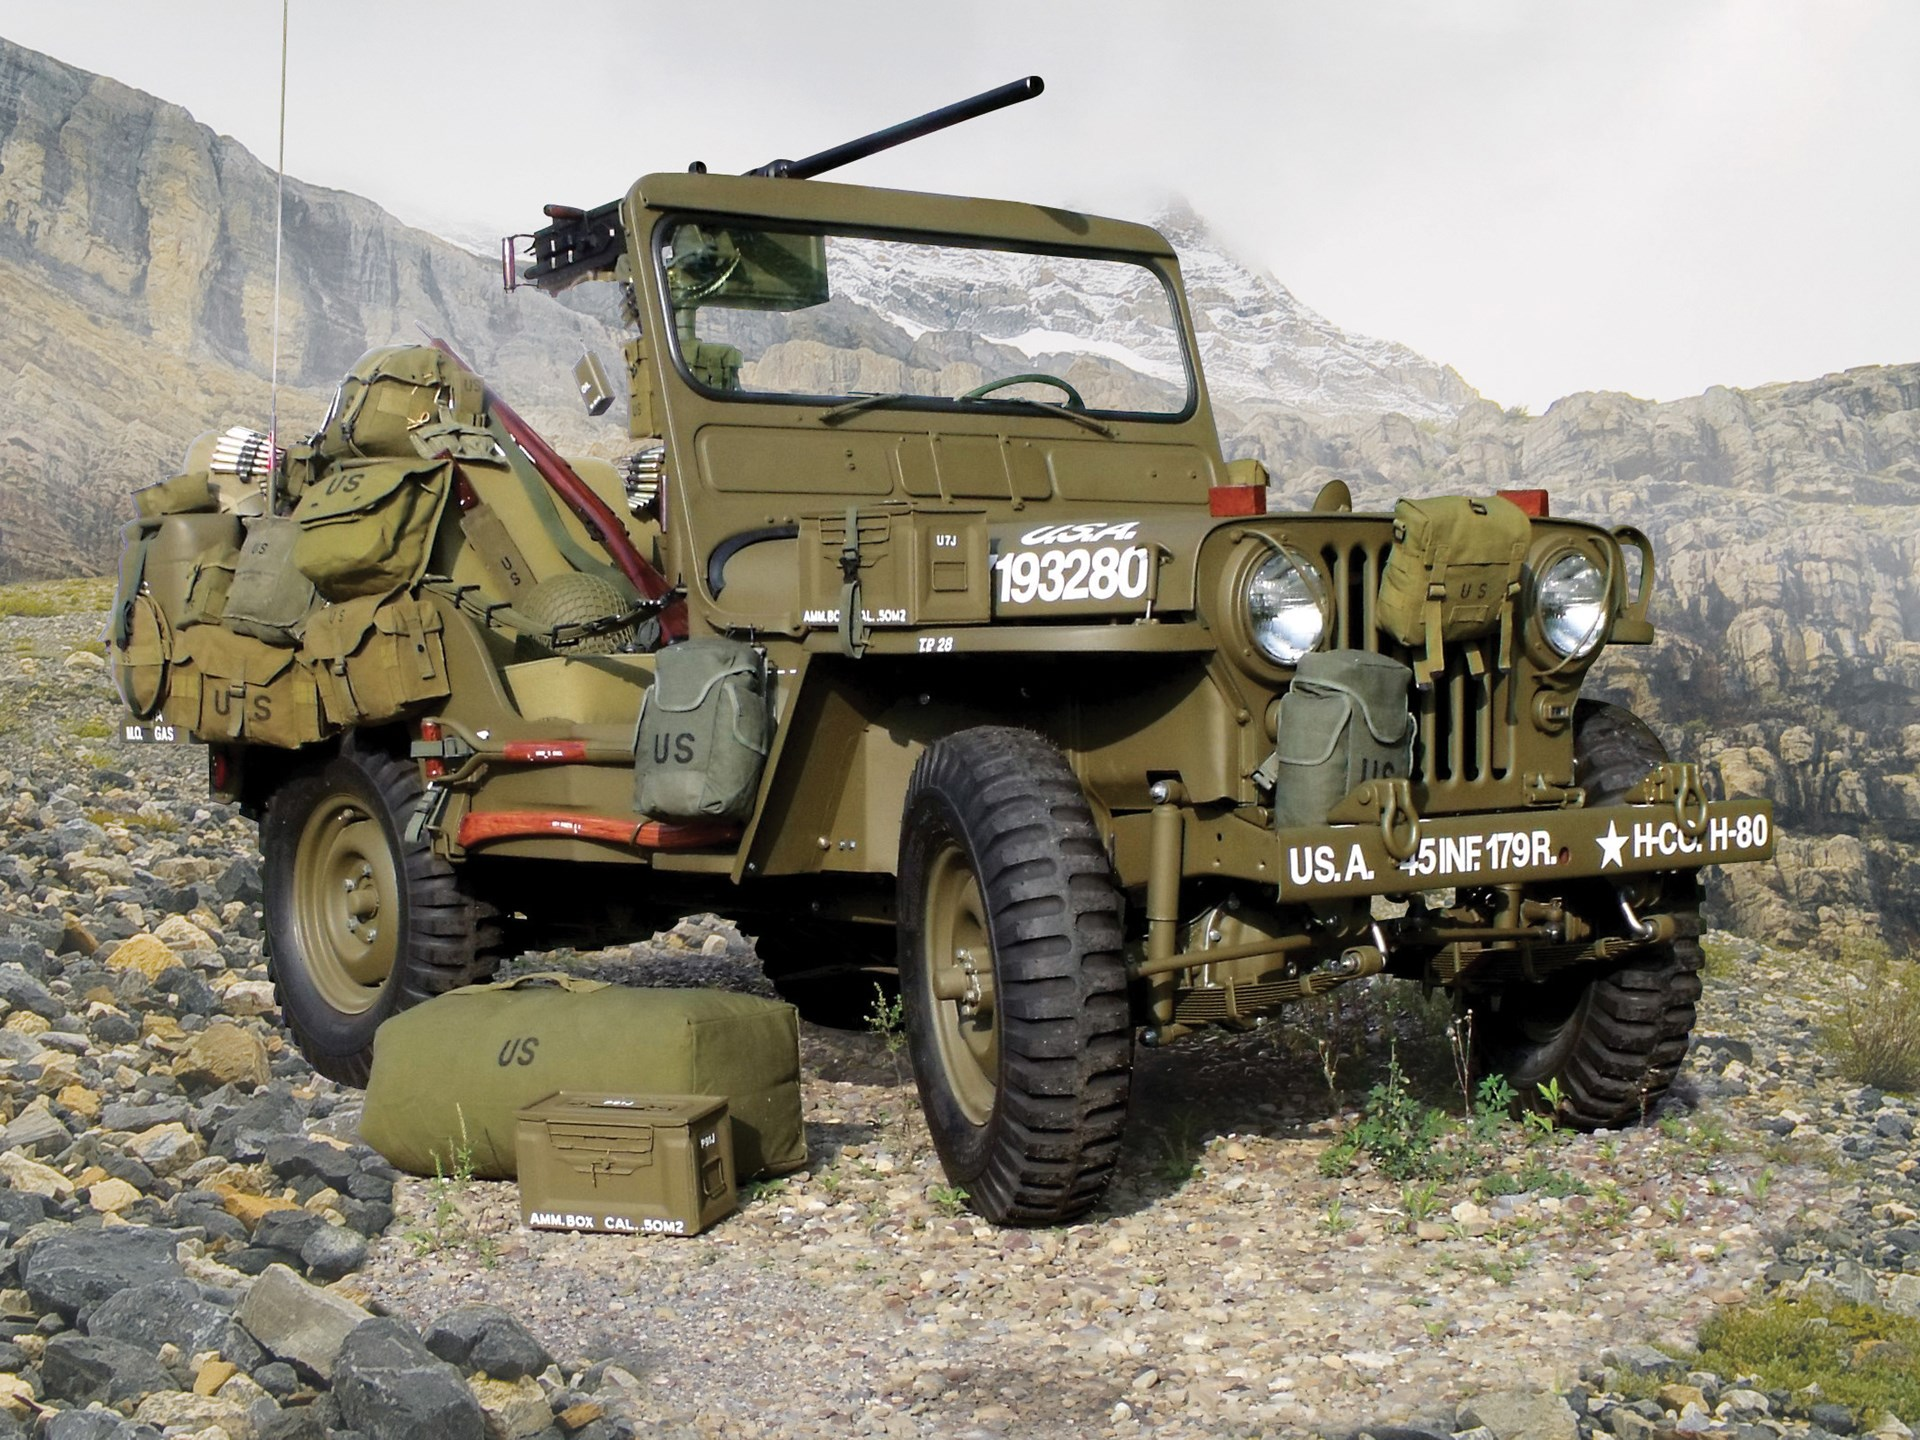 RM Sotheby's - 1952 Willys M38 Korean War Jeep | Arizona 2019